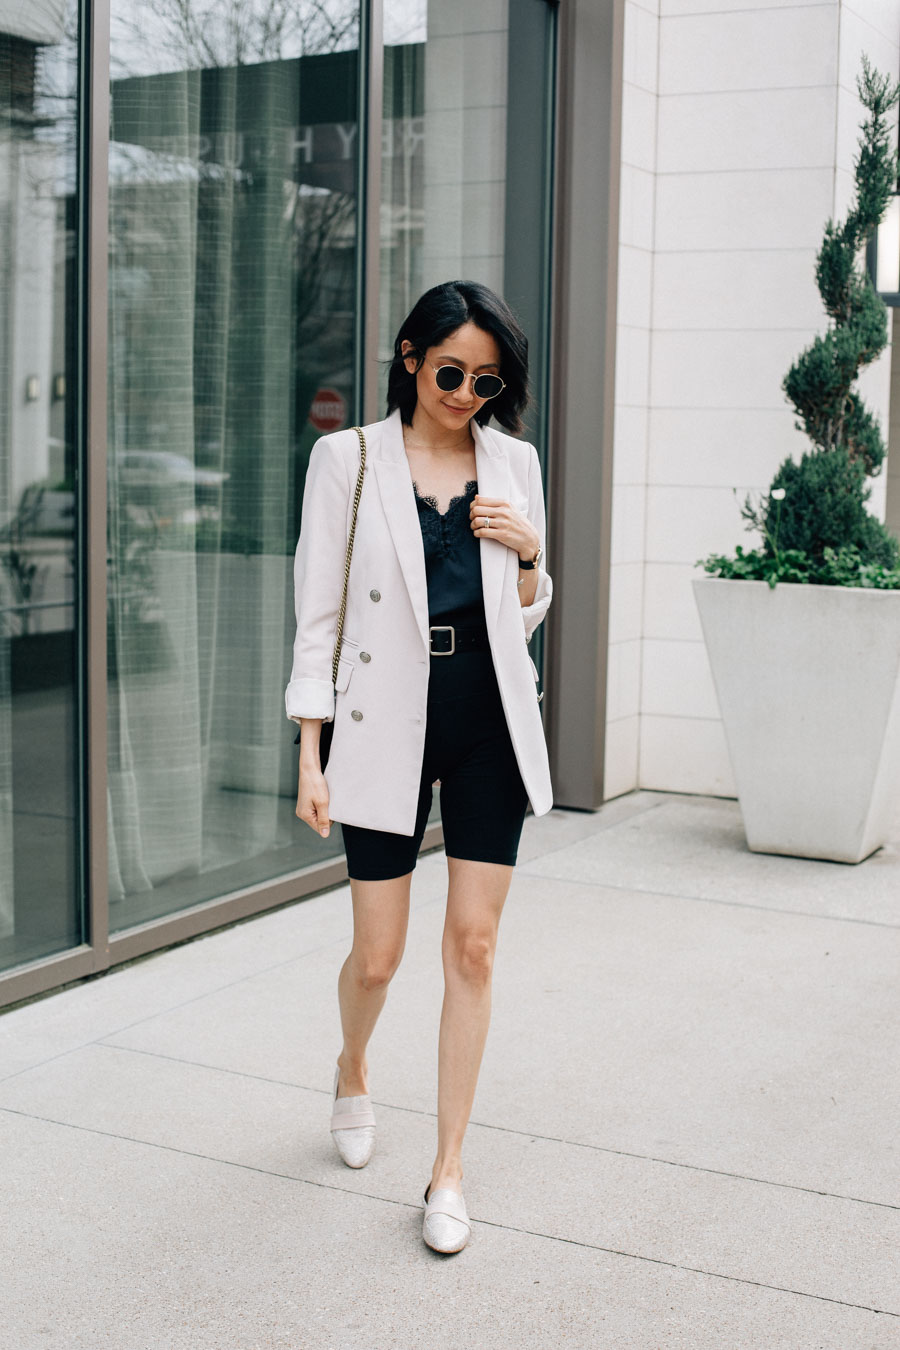 How to style biker shorts with a blazer